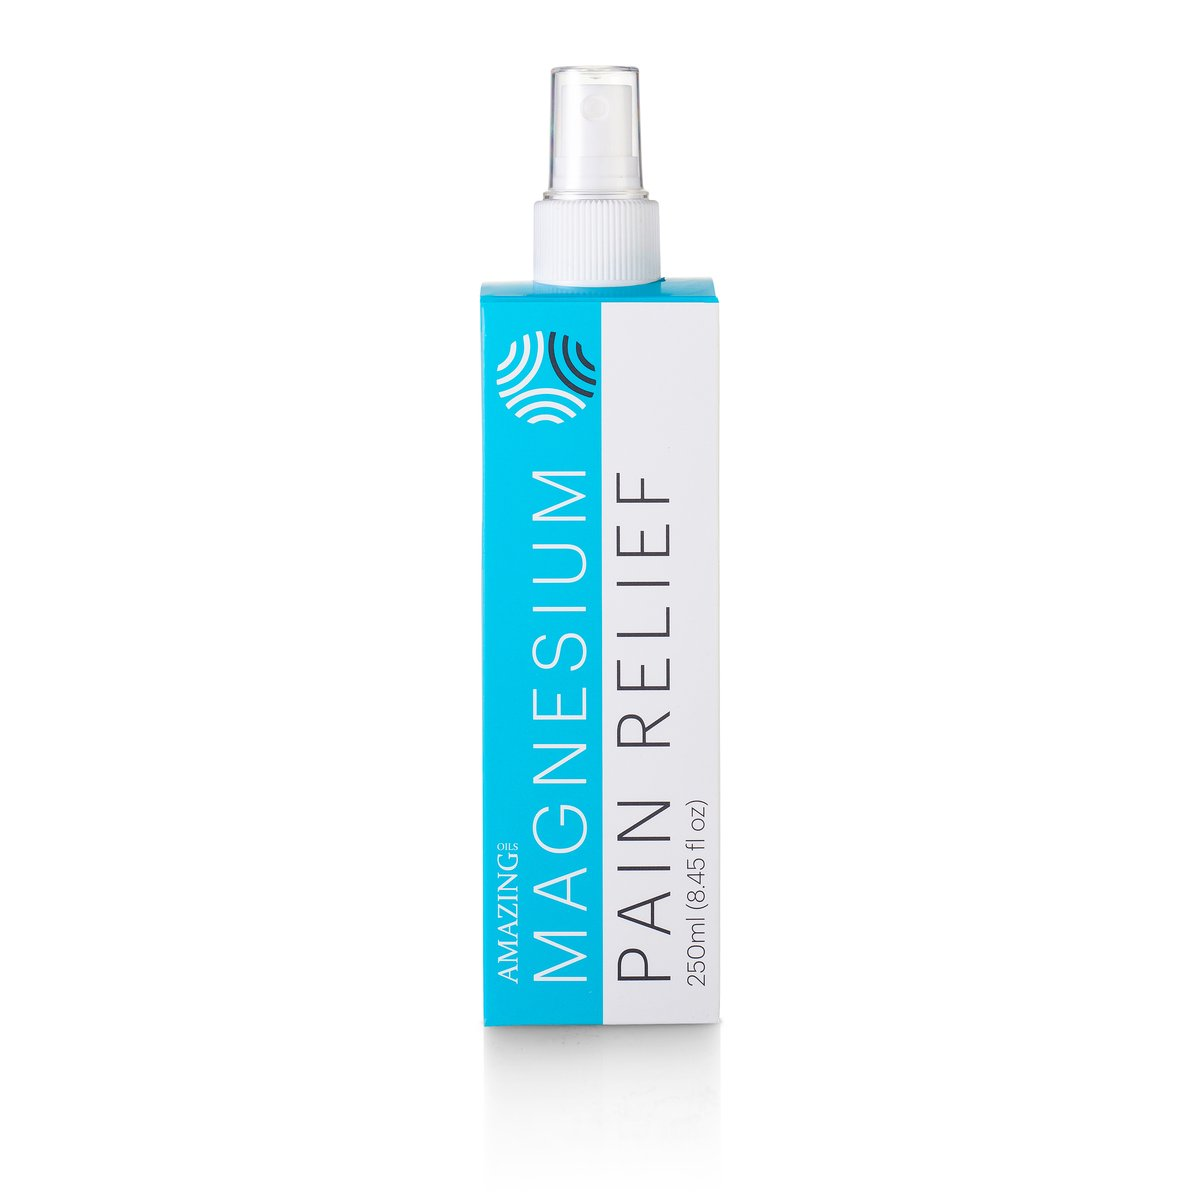 Amazing Oils - Magnesium Oil Spray 250ml